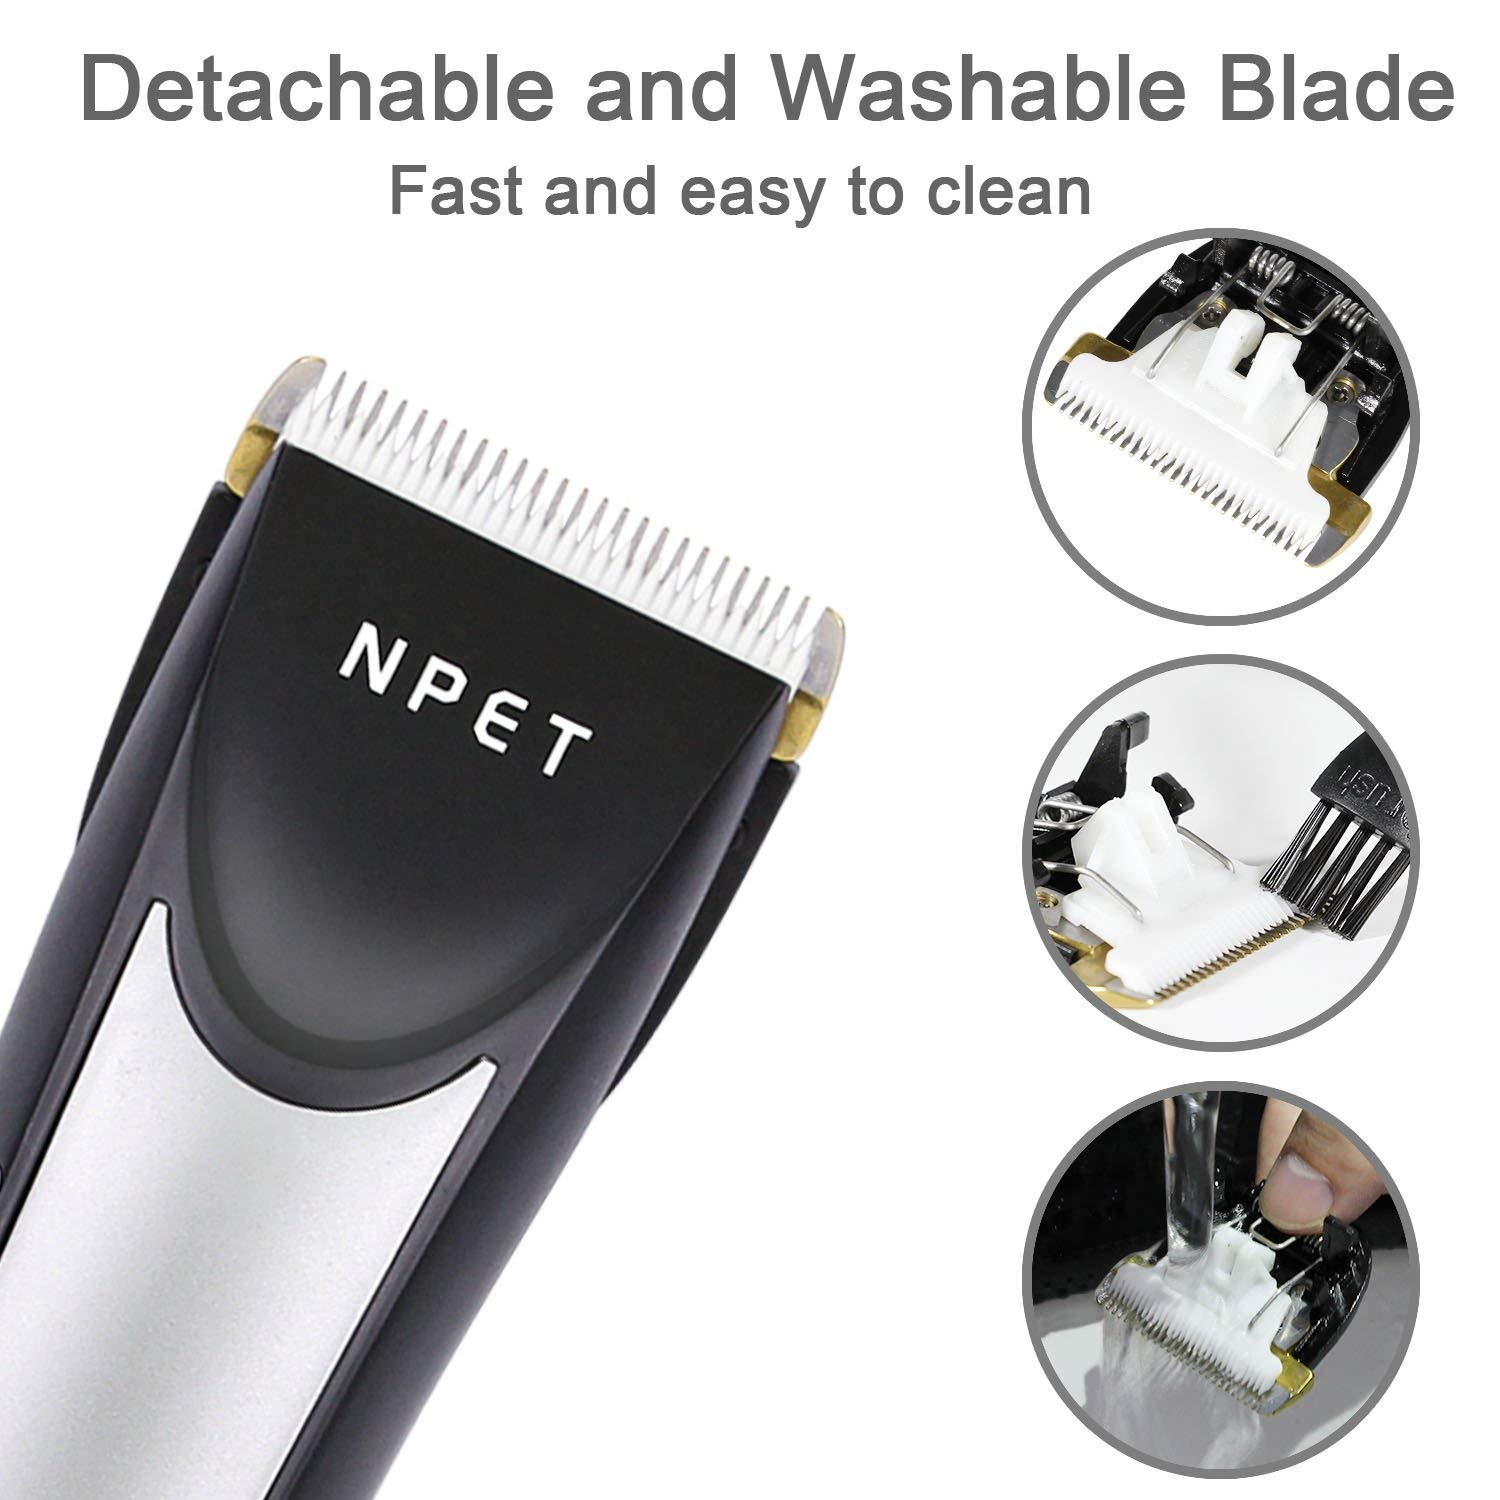 NPET Hair Clippers for Men, 5 Speed Adjustable and Low Noise Beard Trimmer Hair Cutting Kit